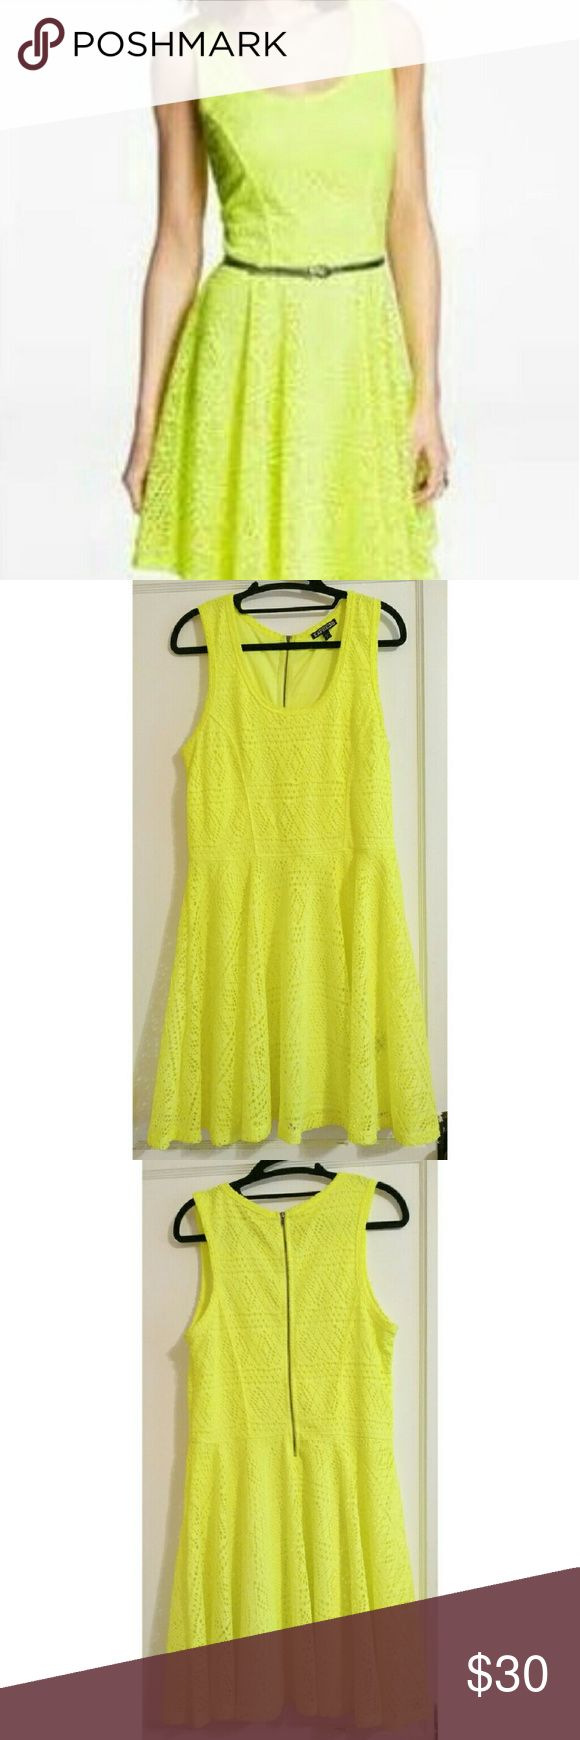 Express Neon Lace Fit N Flare Dress Flattering and fun neon dress. The lighting doesn't fully capture the color, but it is a vibrant NEON yellow. Lace/crochet-style overlay. Back zipper. In good pre-loved condition Express Dresses